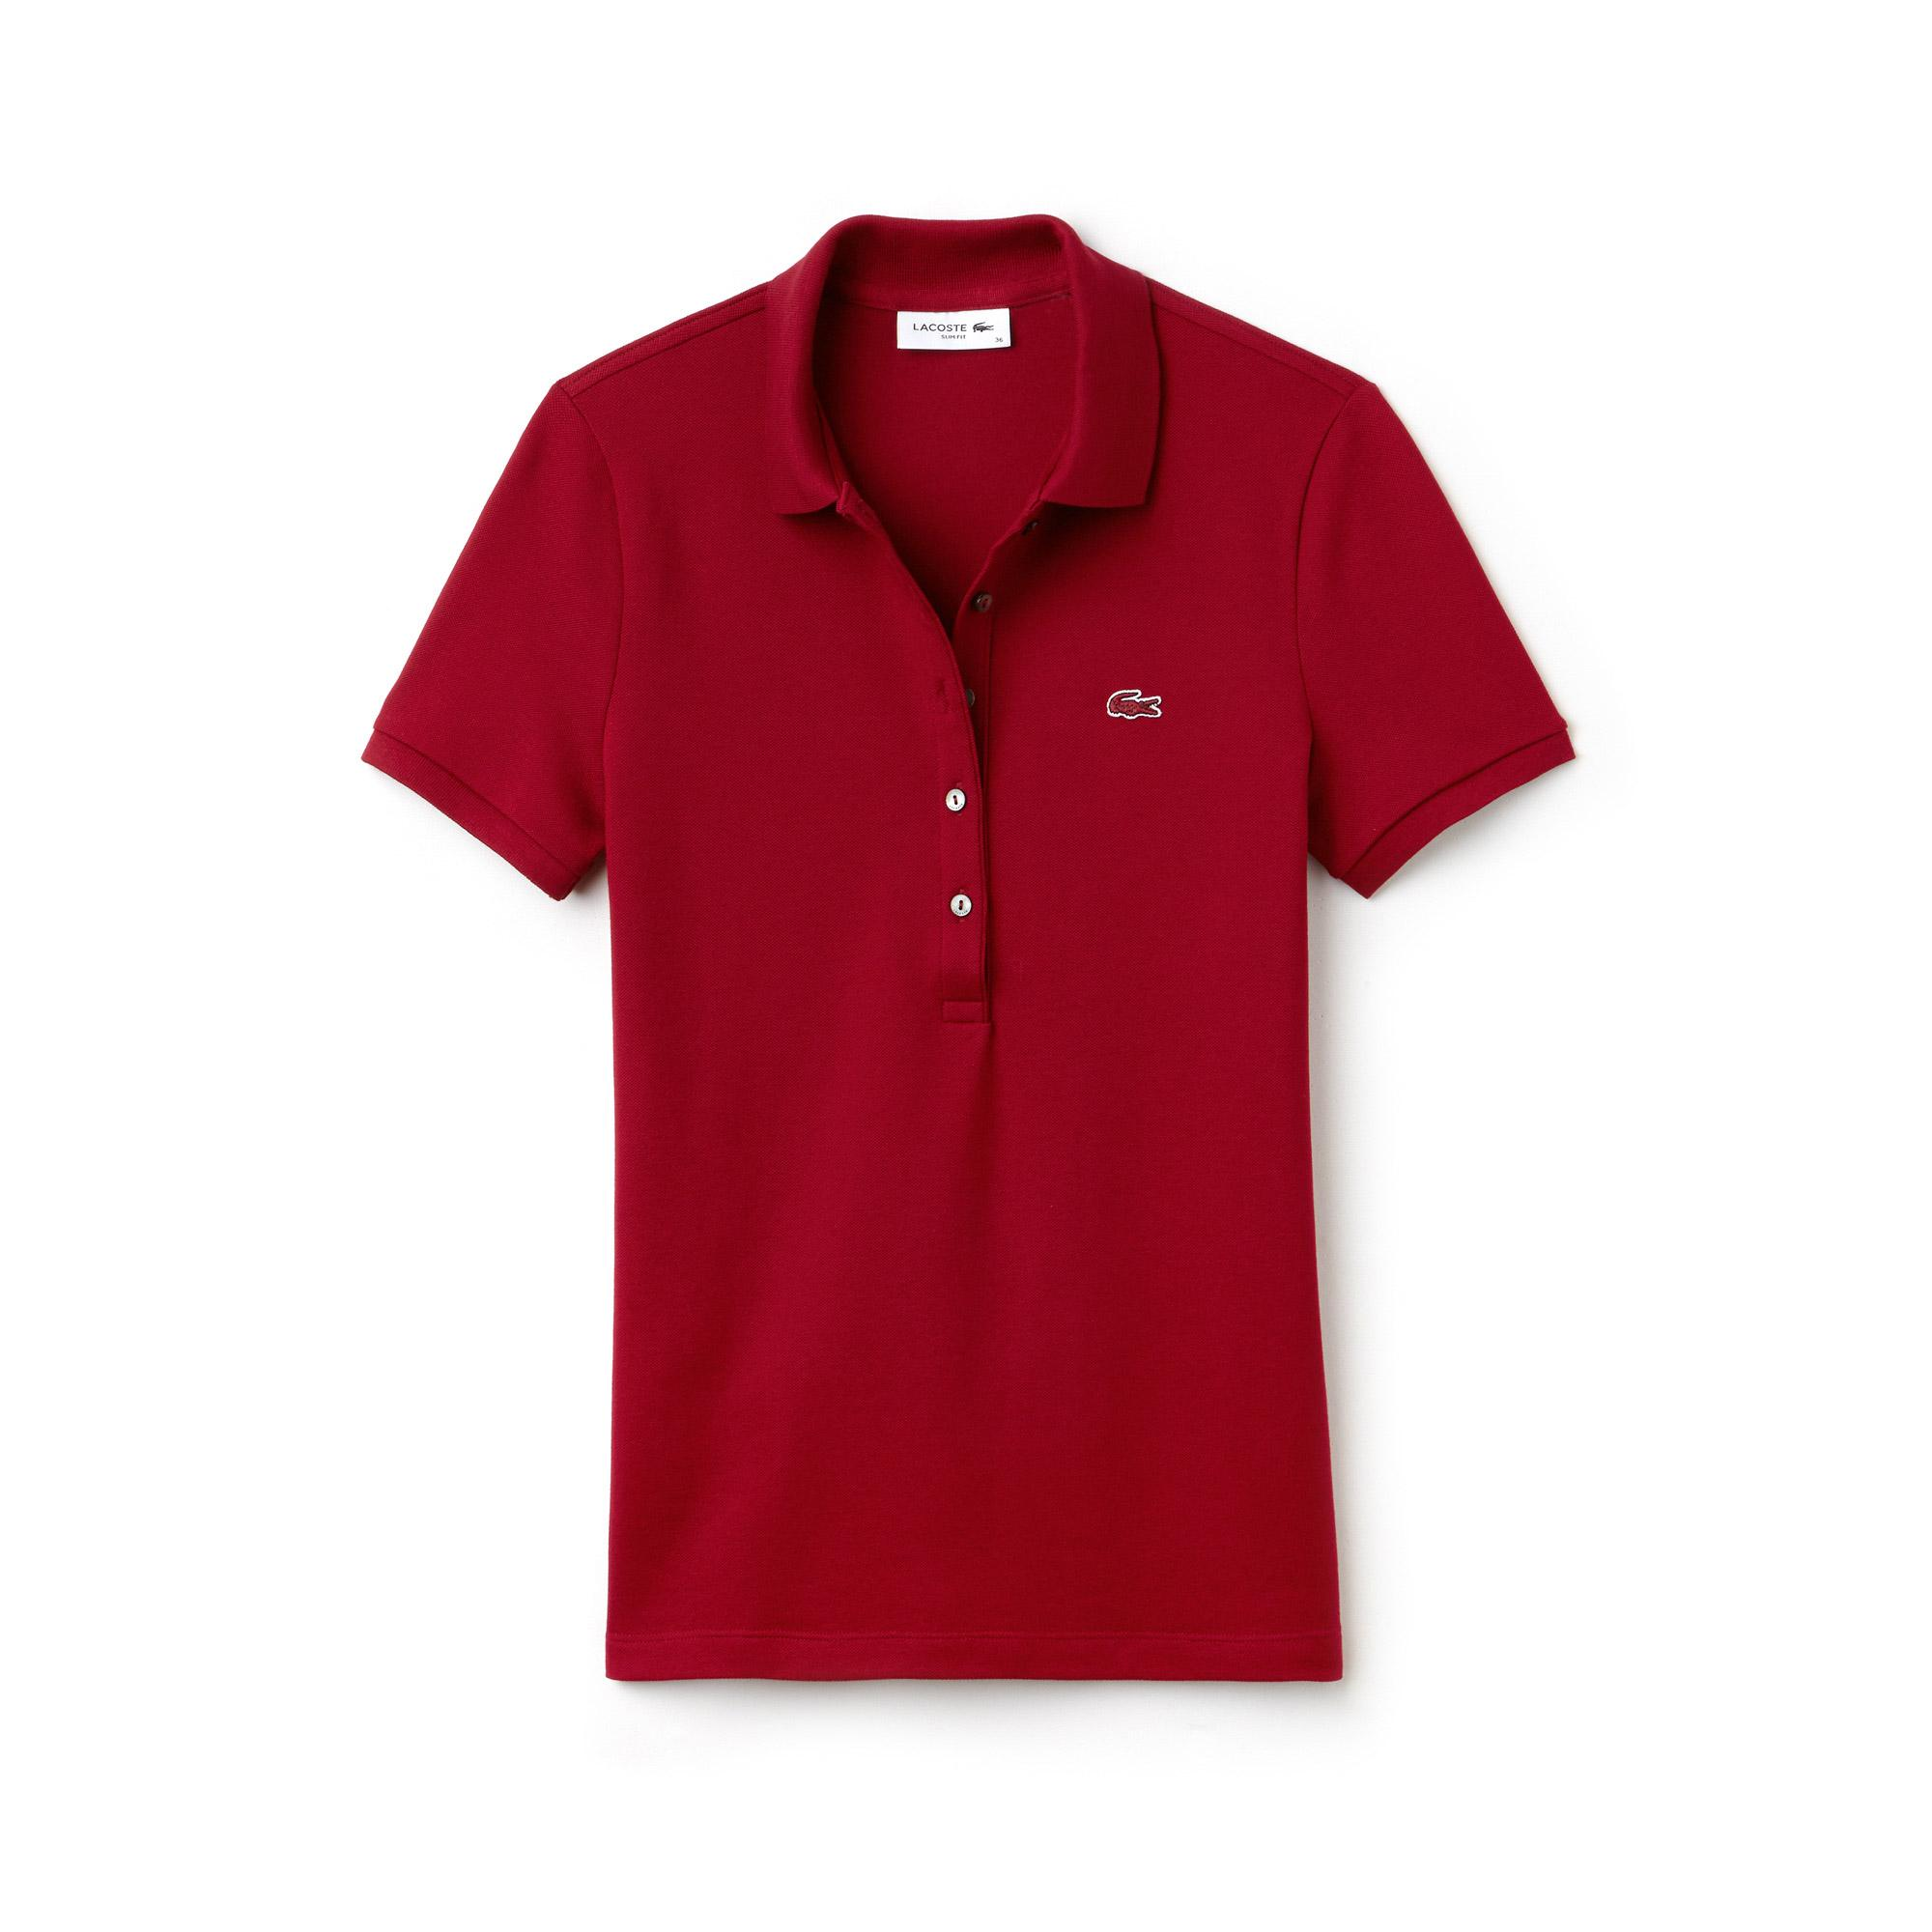 Lacoste Kadın Slim Fit Bordo Polo